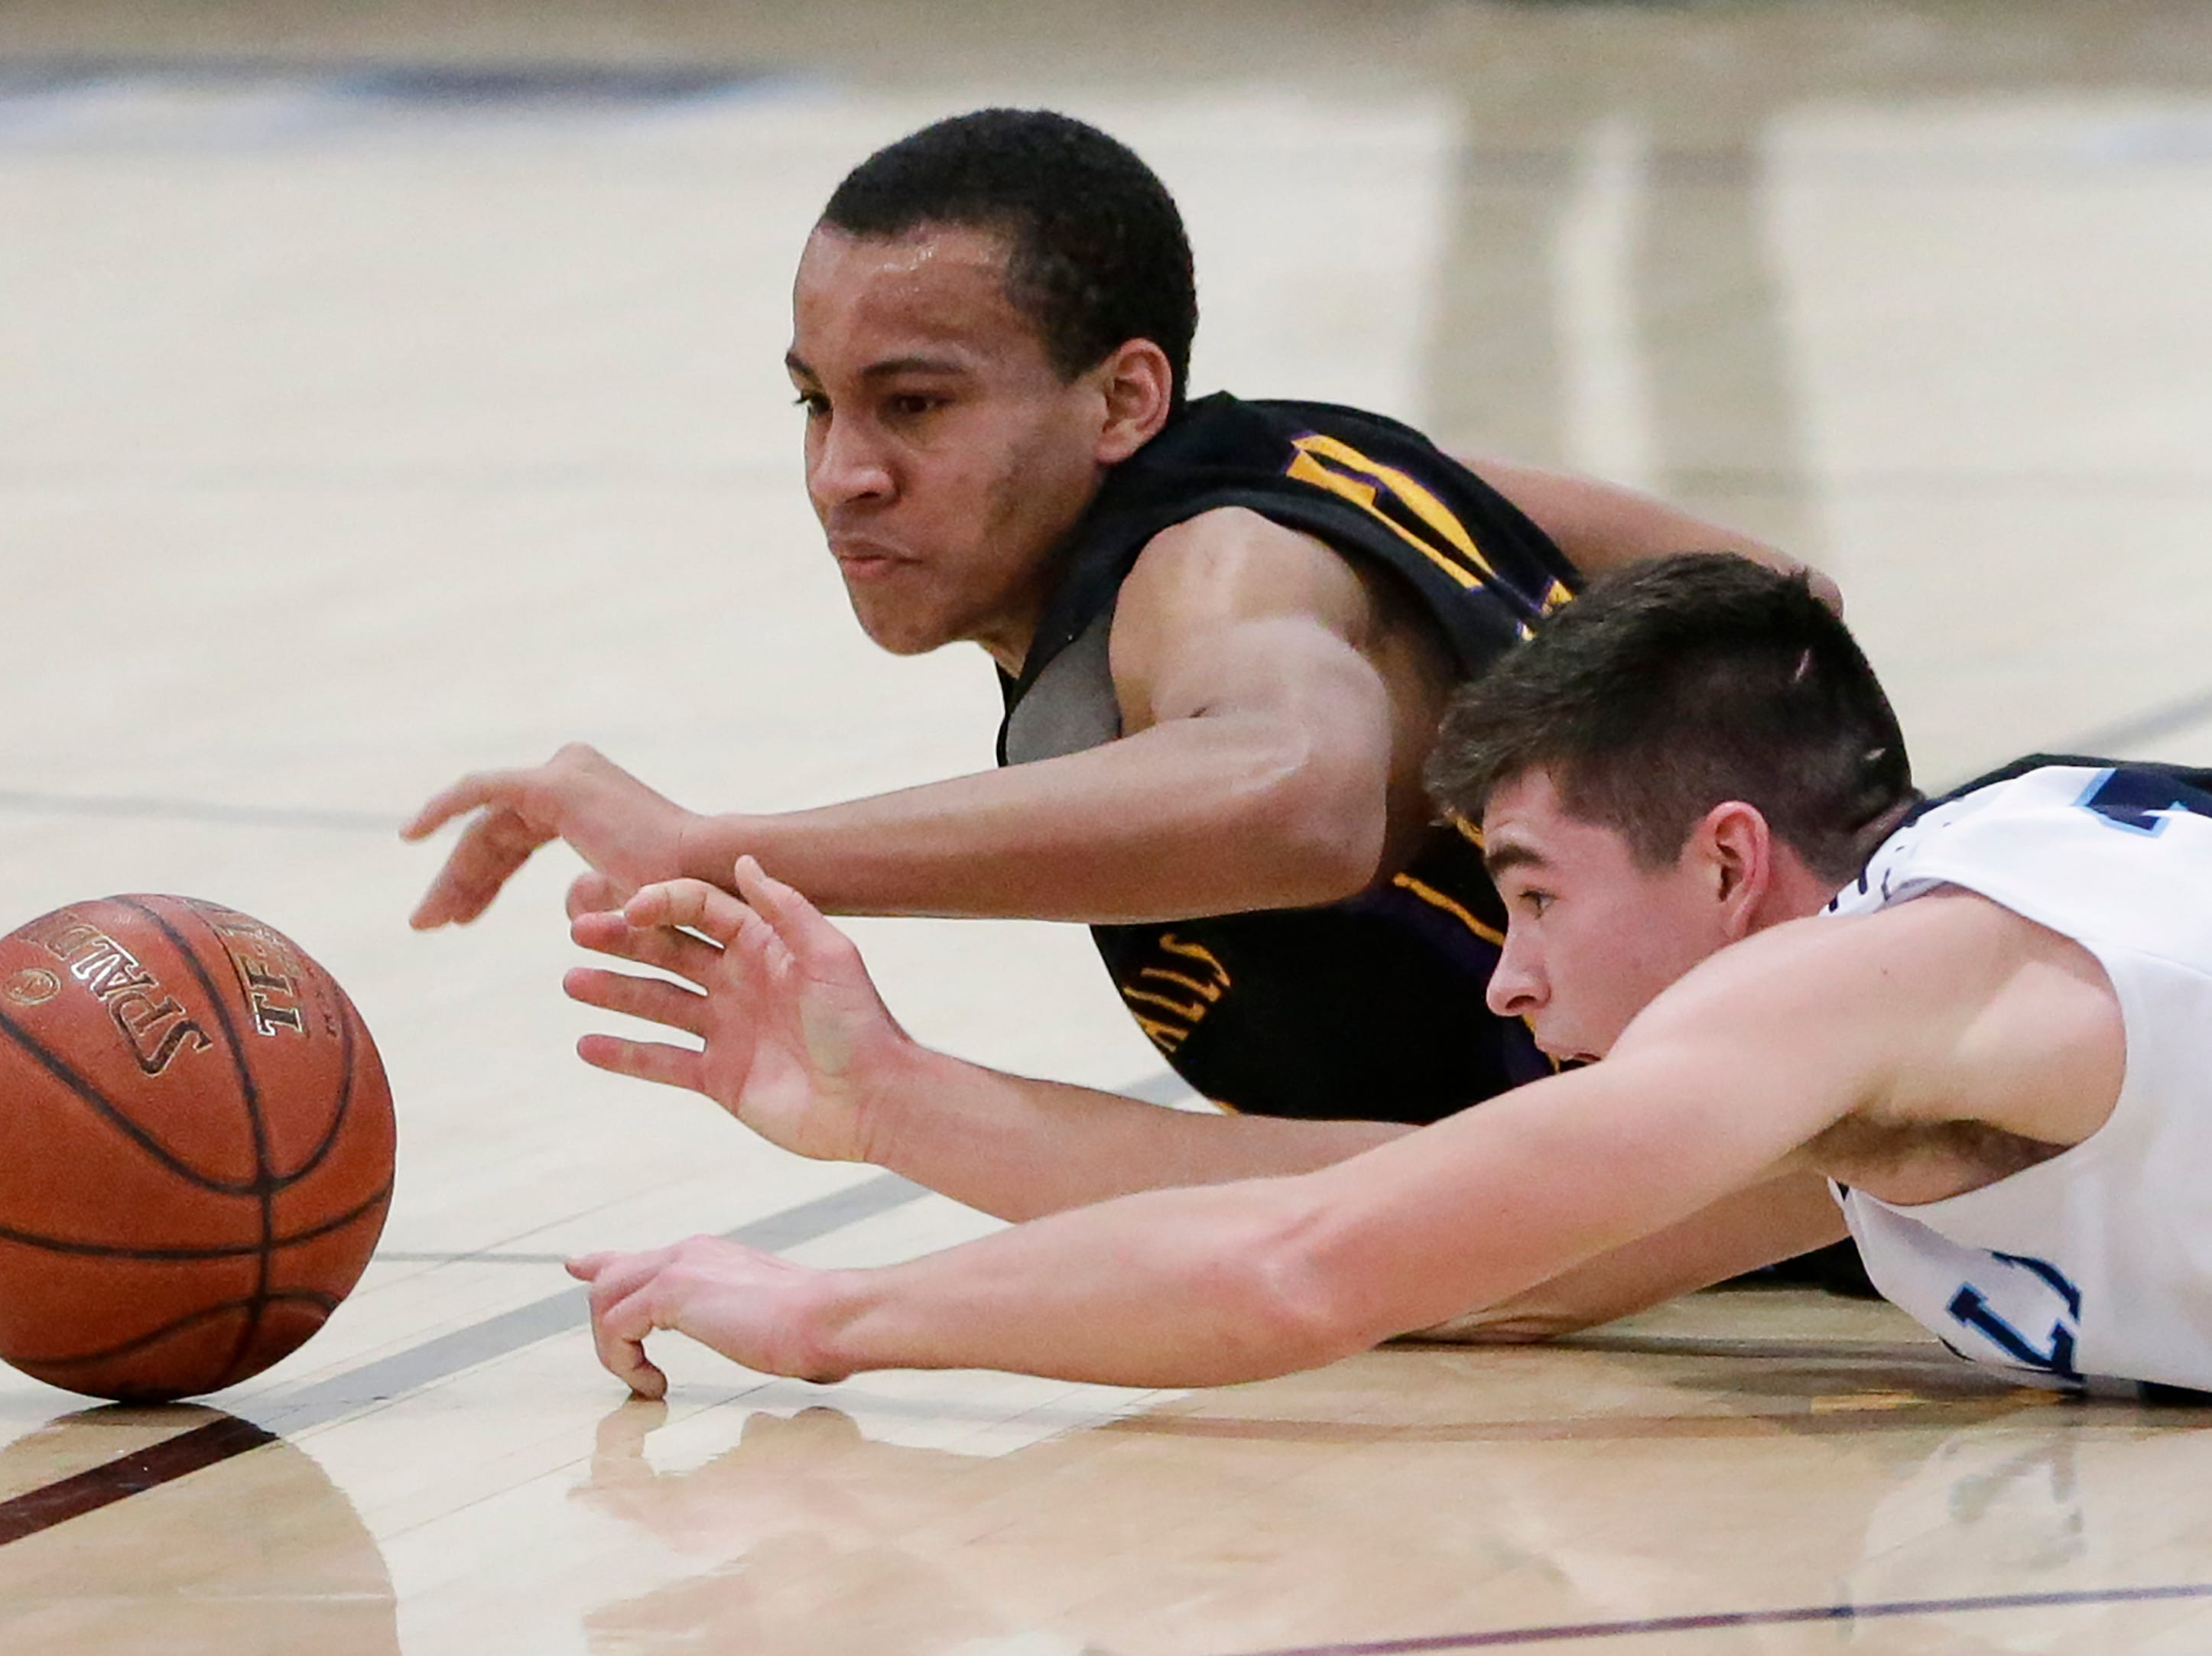 Sheboygan Falls' Dylan Grohskopf (32) battles Roncalli's Ian Behringer (34) for a loose ball during an EWC matchup at Roncalli High School Thursday, January 10, 2019, in Manitowoc, Wis. Joshua Clark/USA TODAY NETWORK-Wisconsin